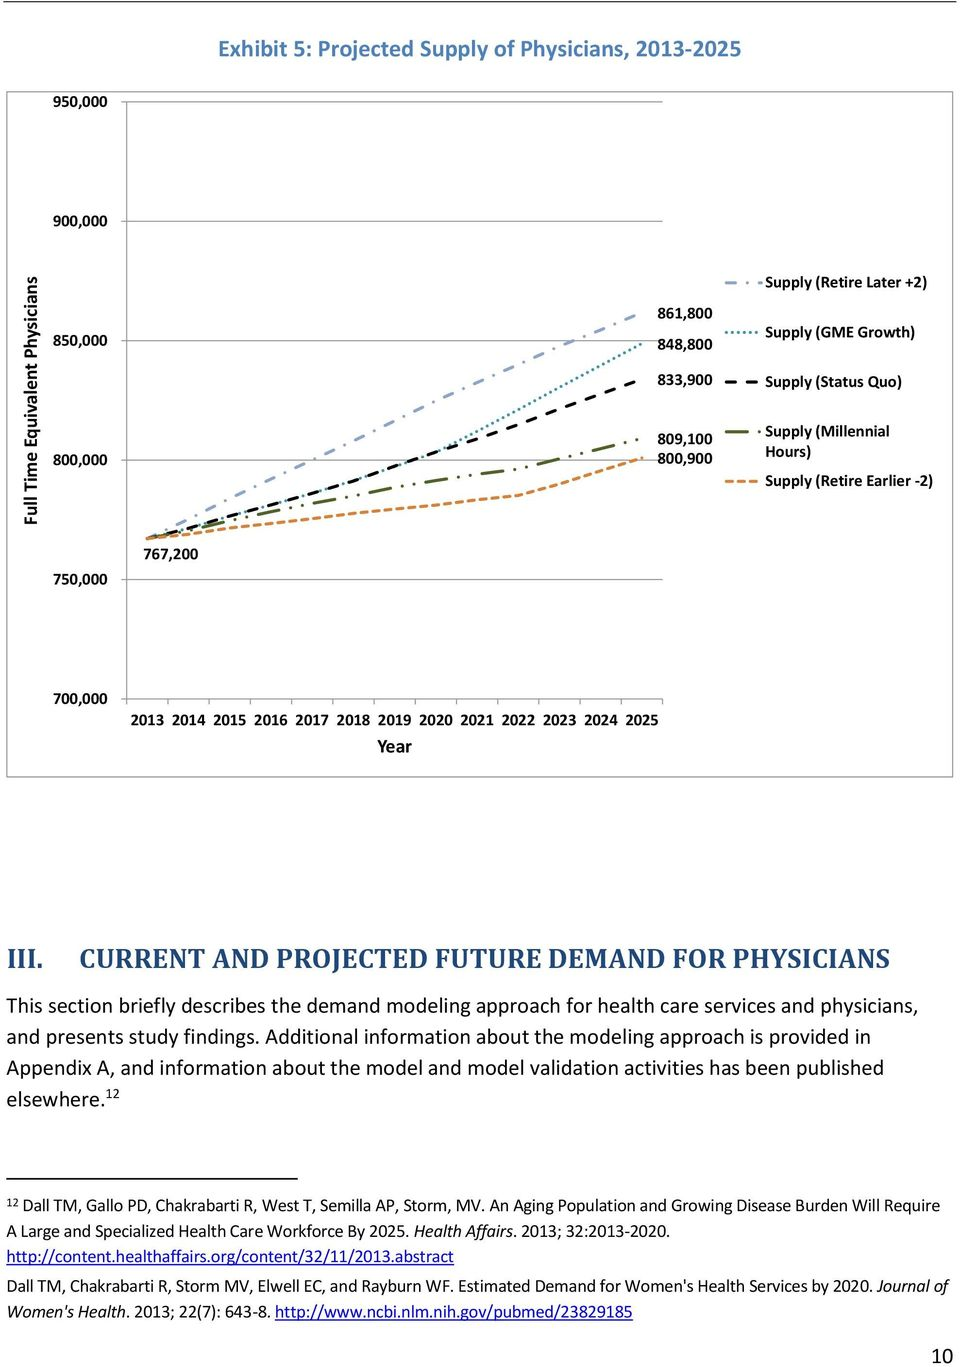 CURRENT AND PROJECTED FUTURE DEMAND FOR PHYSICIANS This section briefly describes the demand modeling approach for health care services and physicians, and presents study findings.